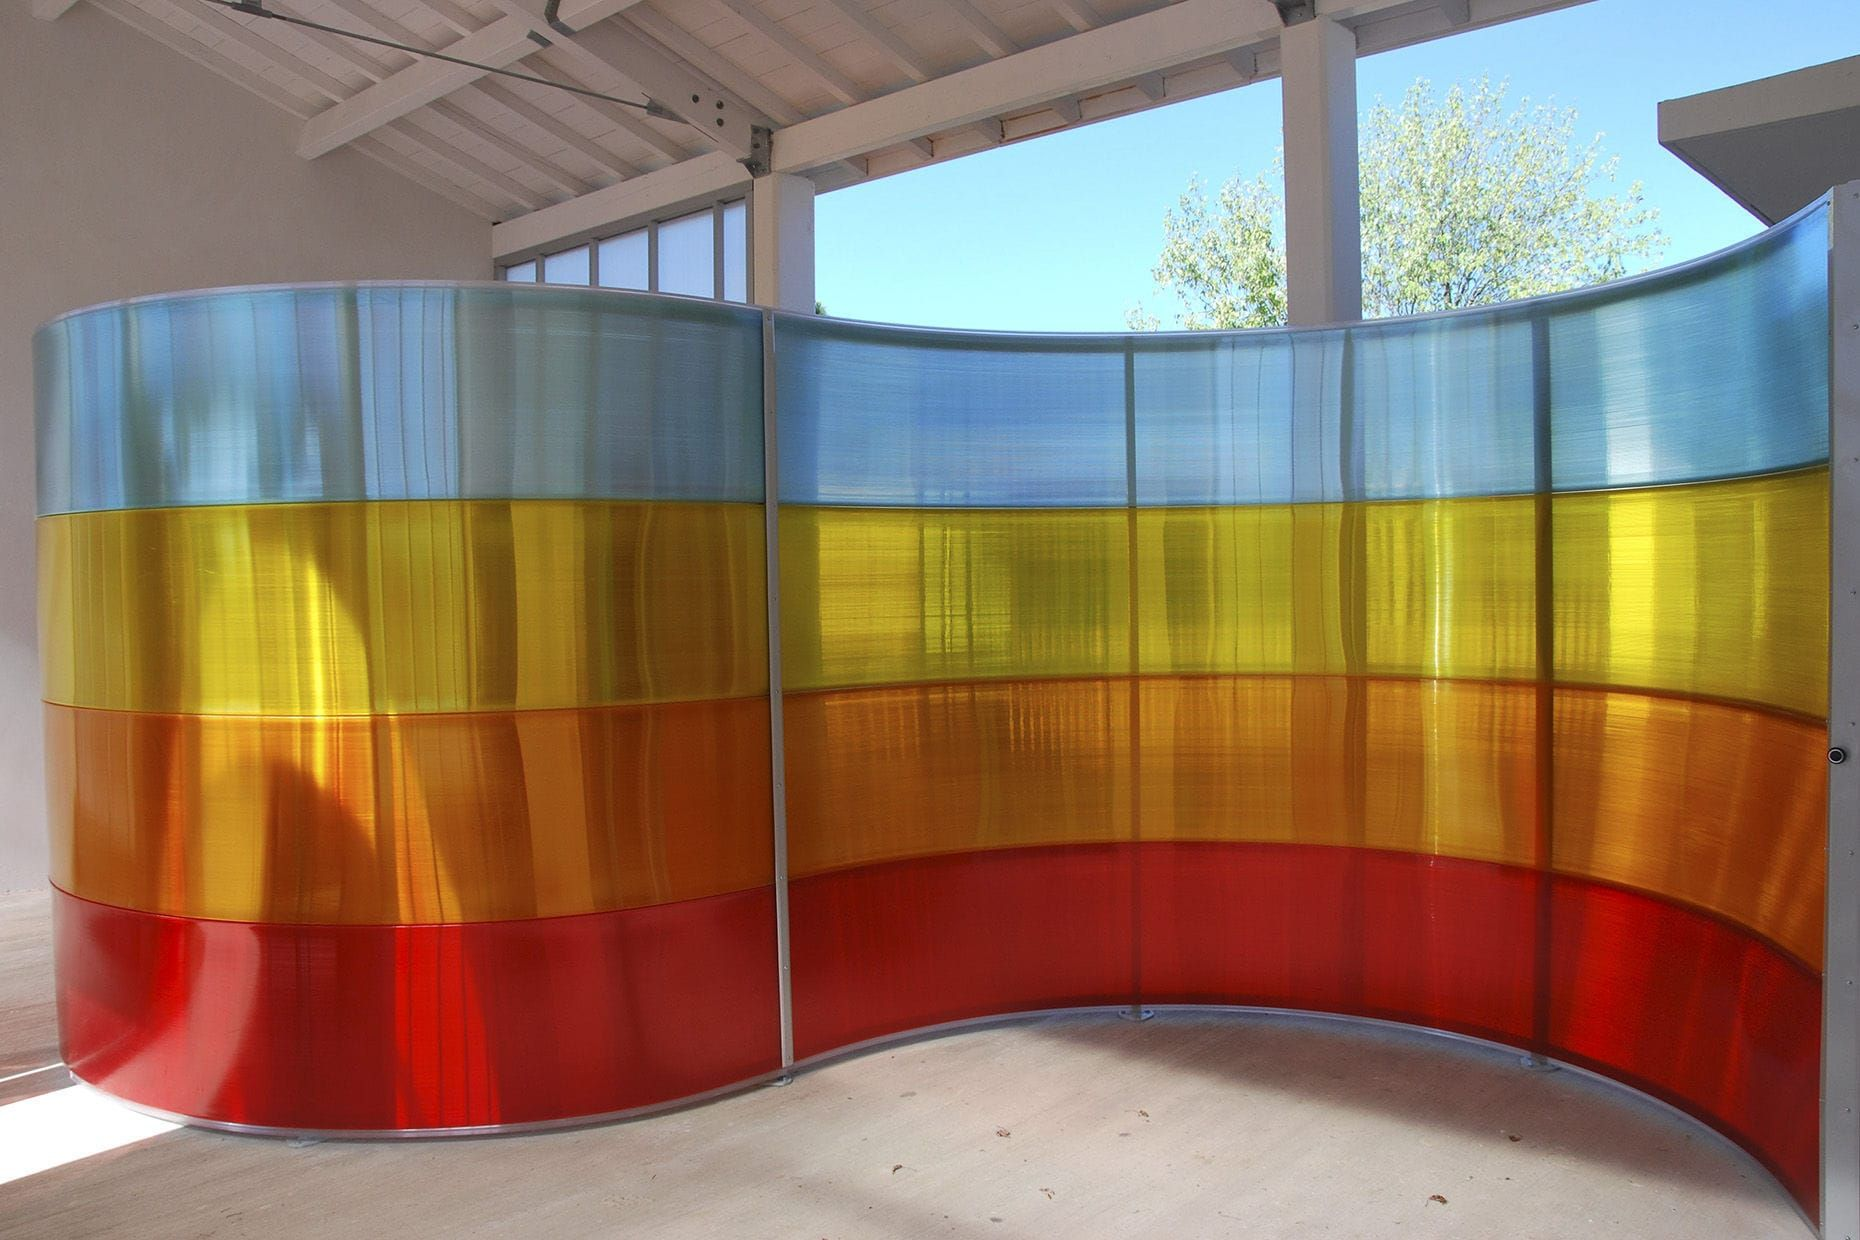 Image Result For Polycarbonate Interior Wall